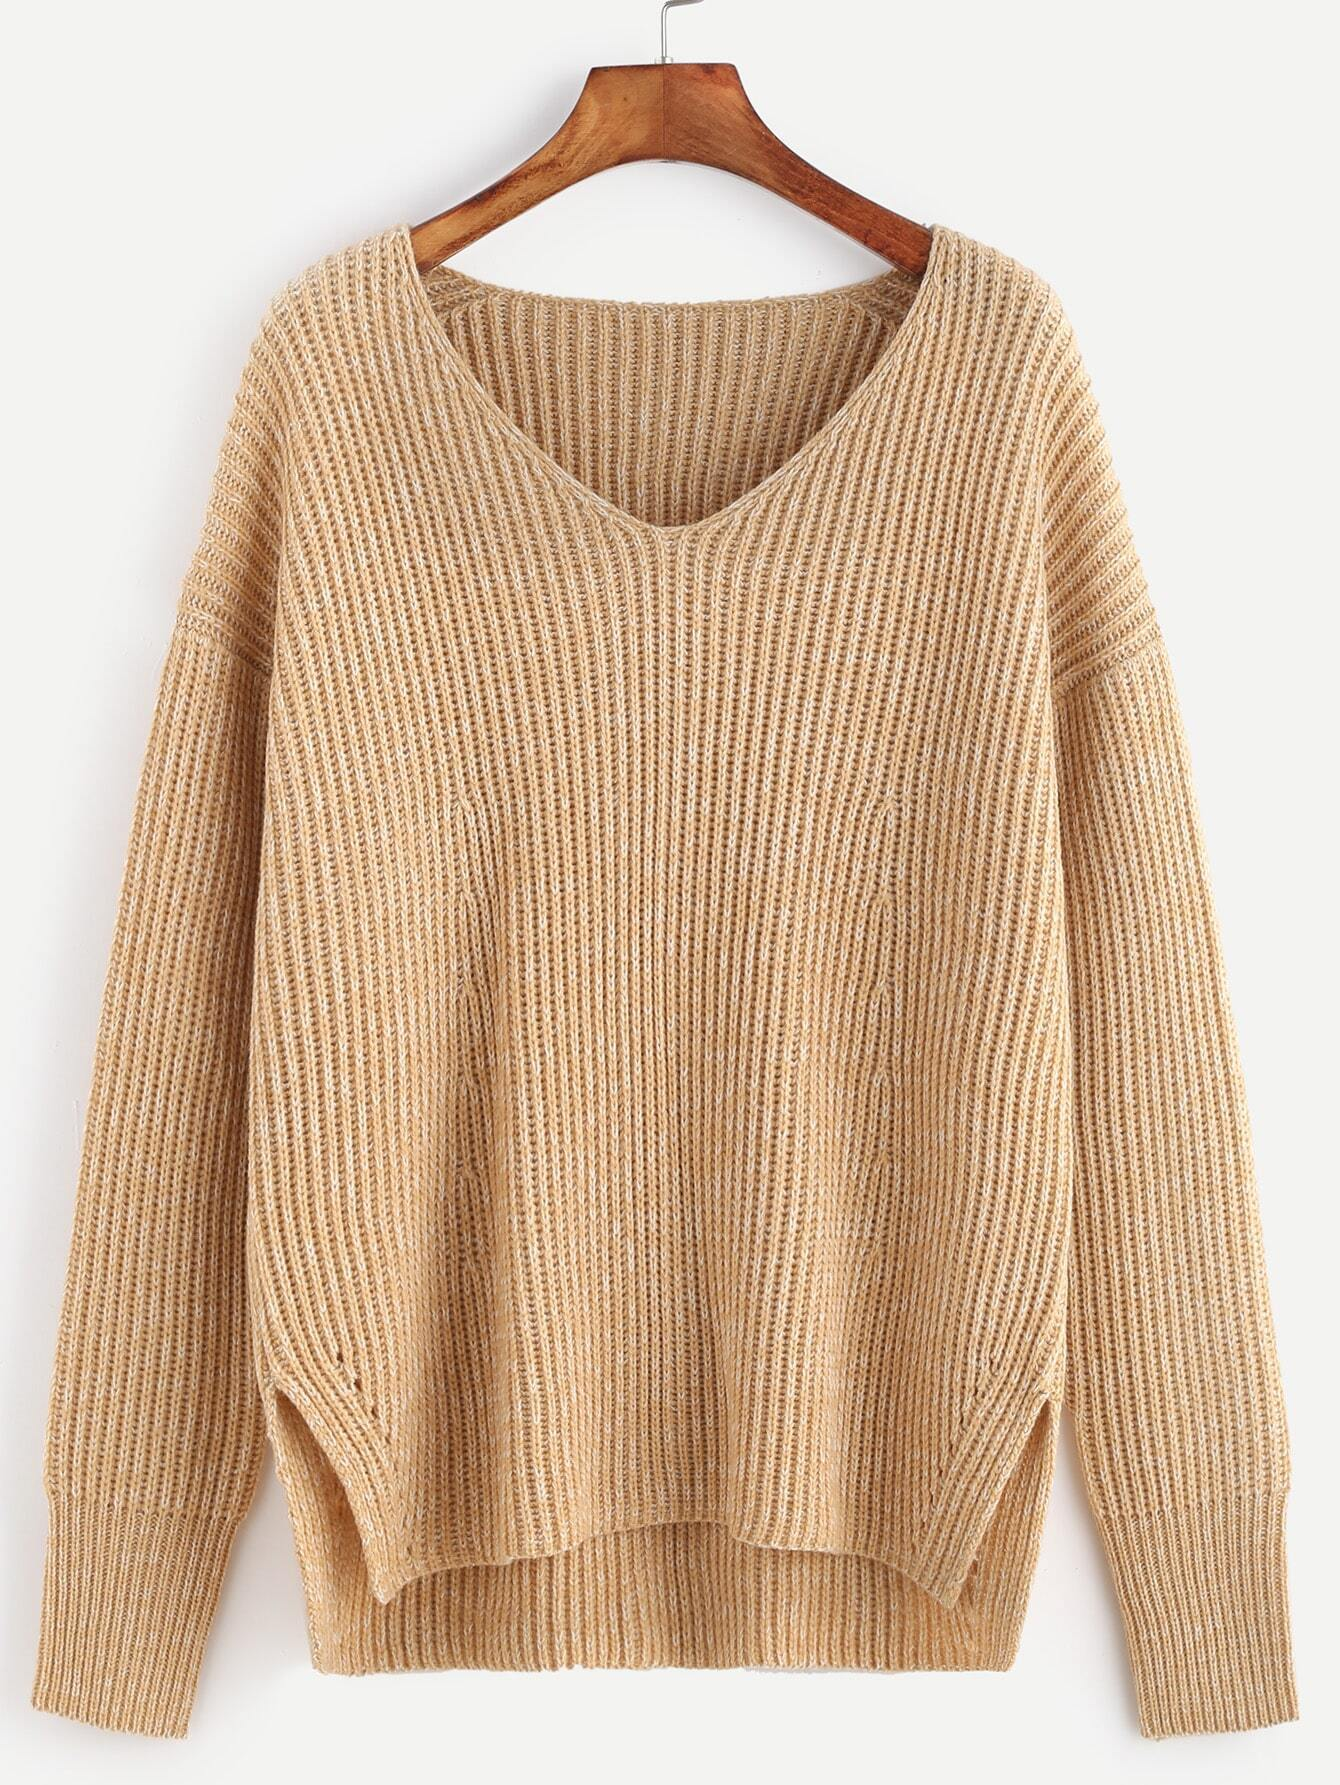 Apricot Marled Ribbed Knit Slit High Low Sweater sweater161101454